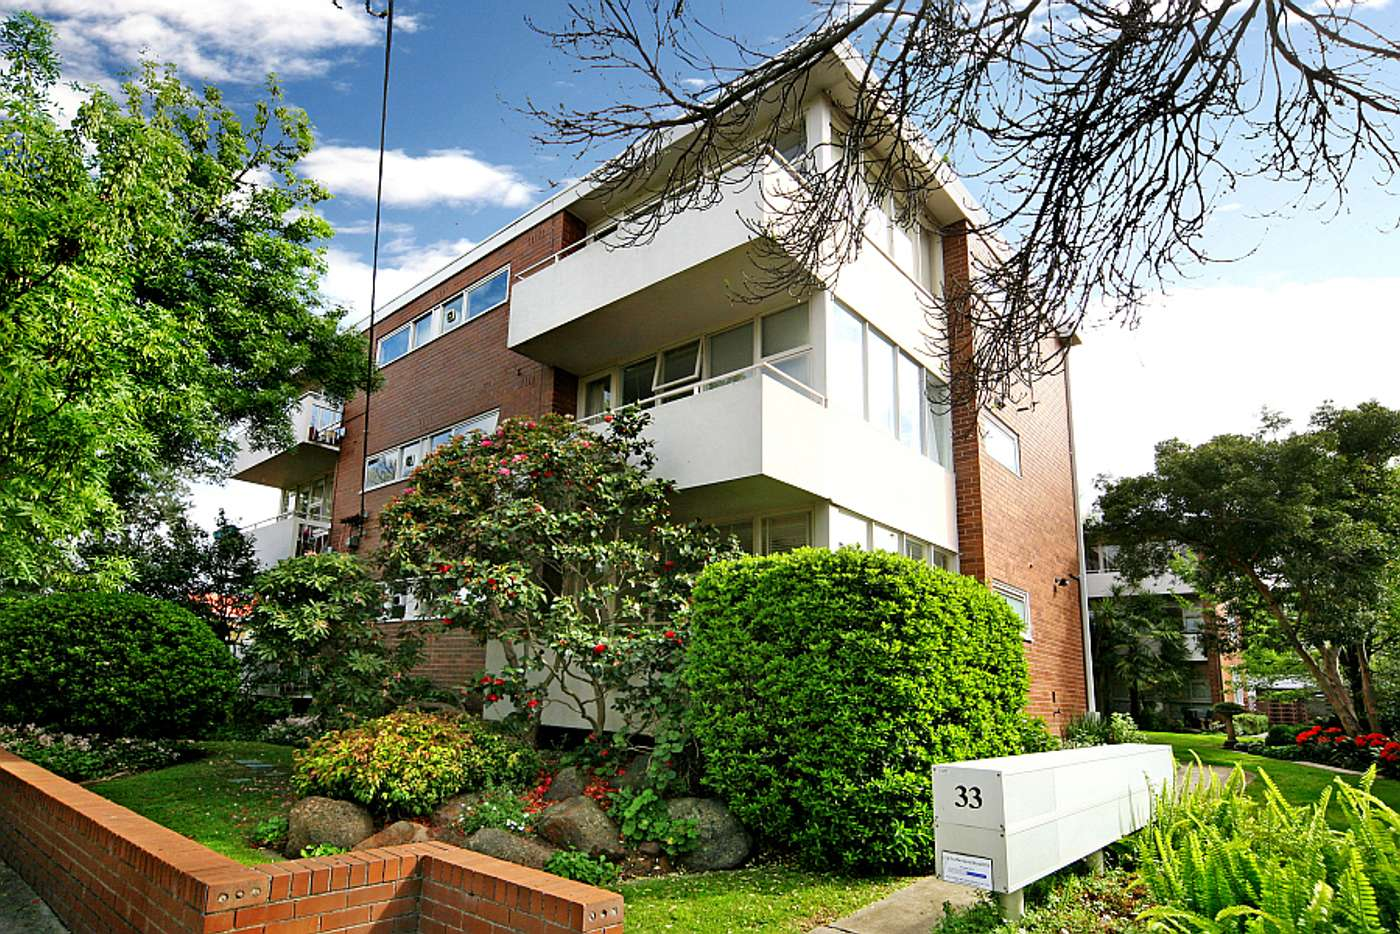 Main view of Homely apartment listing, 7/33 Sutherland Road, Armadale VIC 3143